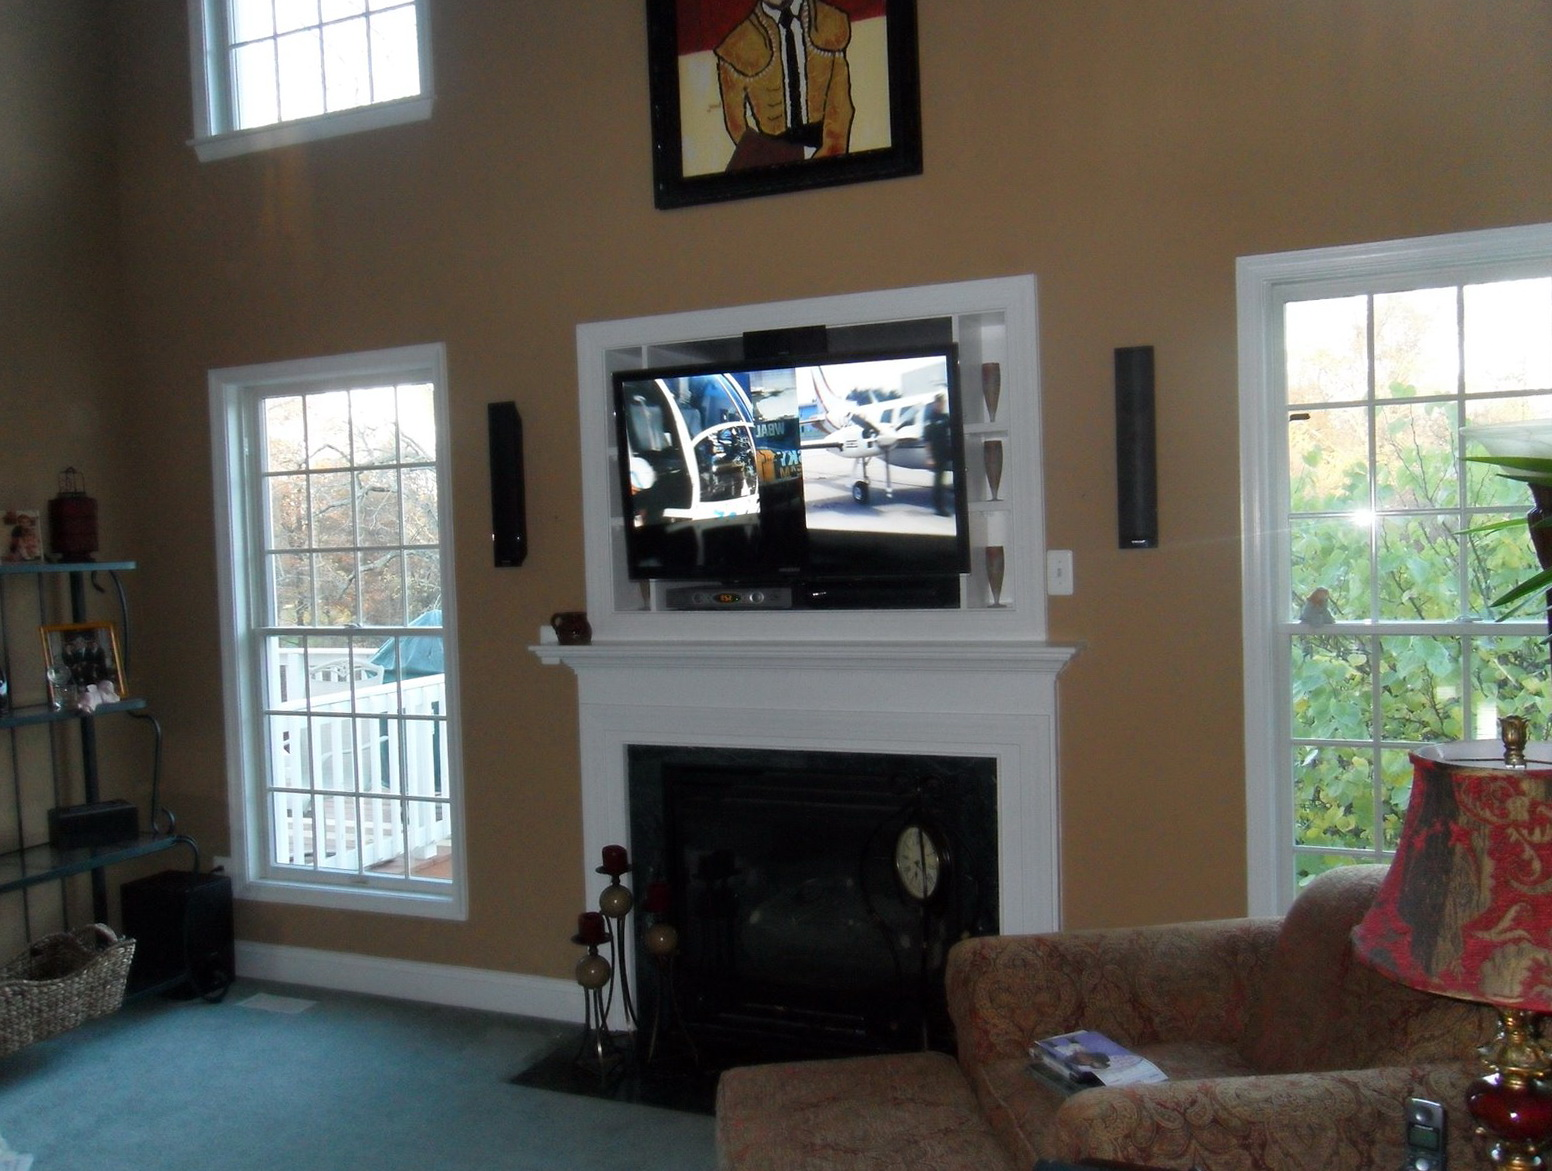 Mounting Tv Above Fireplace Hiding Cables Awesome Where To Put Cable Box With Tv Over Fireplace